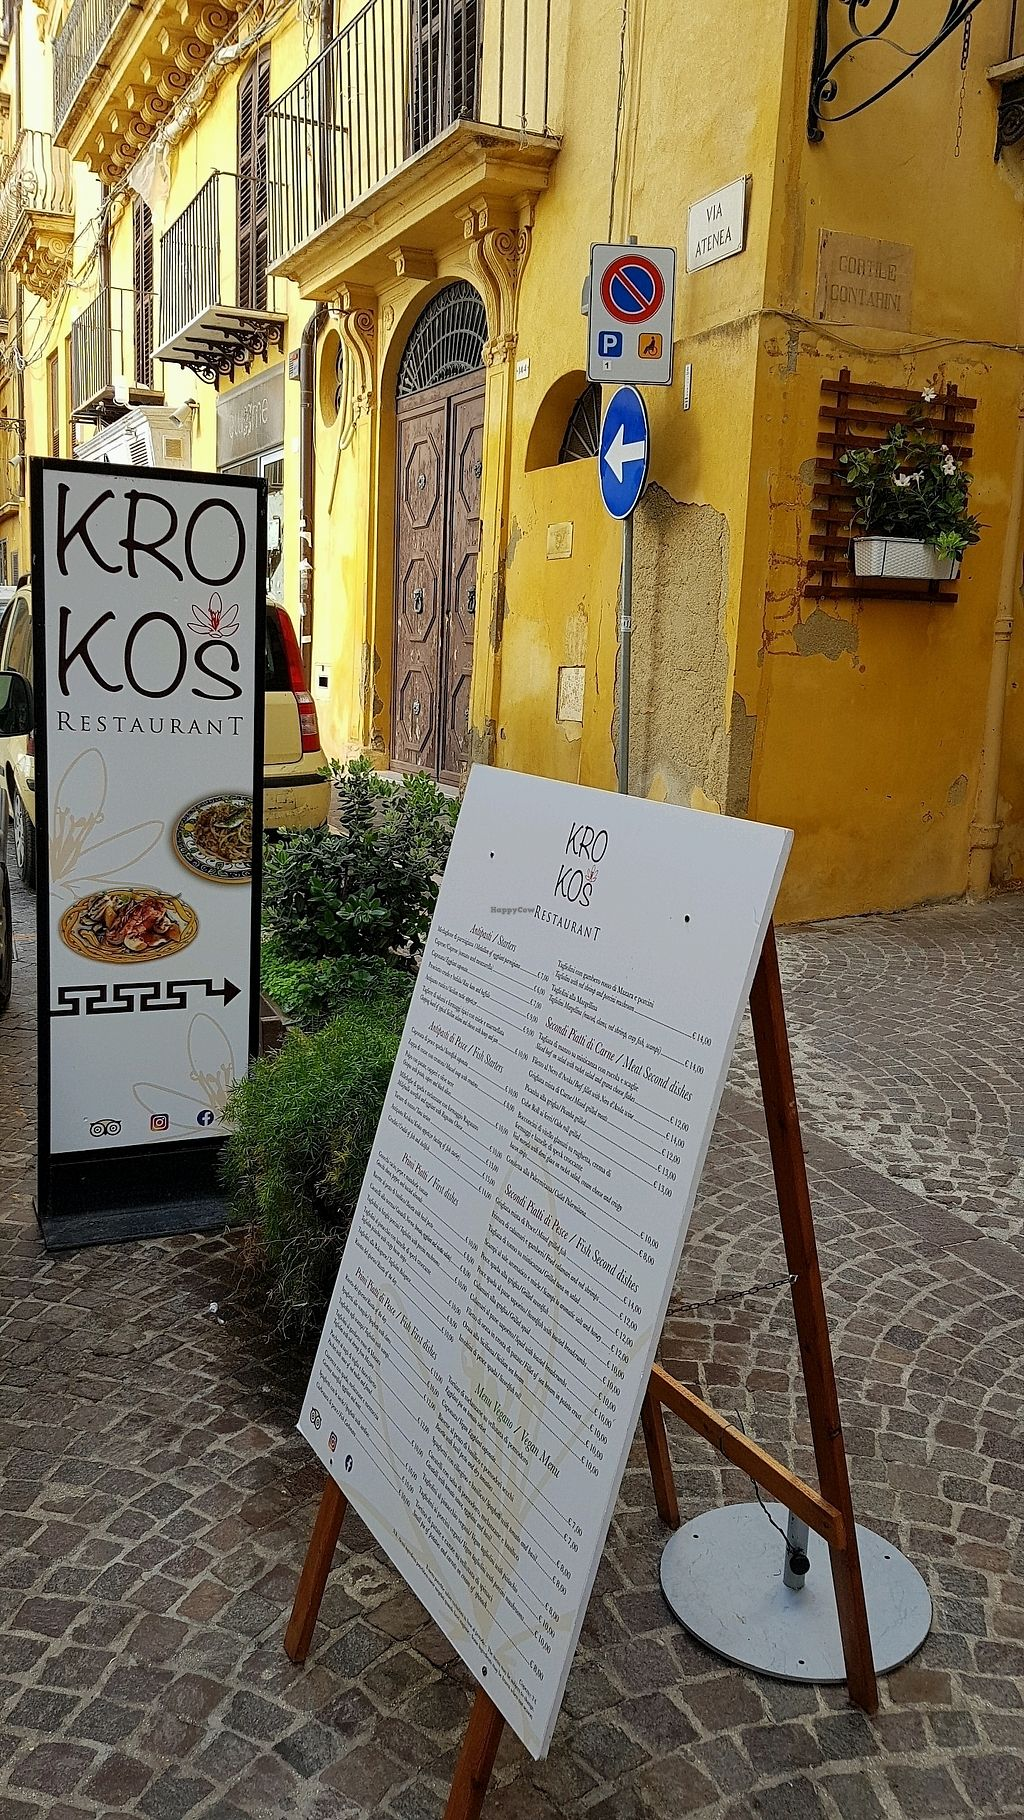 """Photo of Krokos  by <a href=""""/members/profile/gyvate"""">gyvate</a> <br/>Entry from via Atena <br/> November 25, 2017  - <a href='/contact/abuse/image/94517/328982'>Report</a>"""